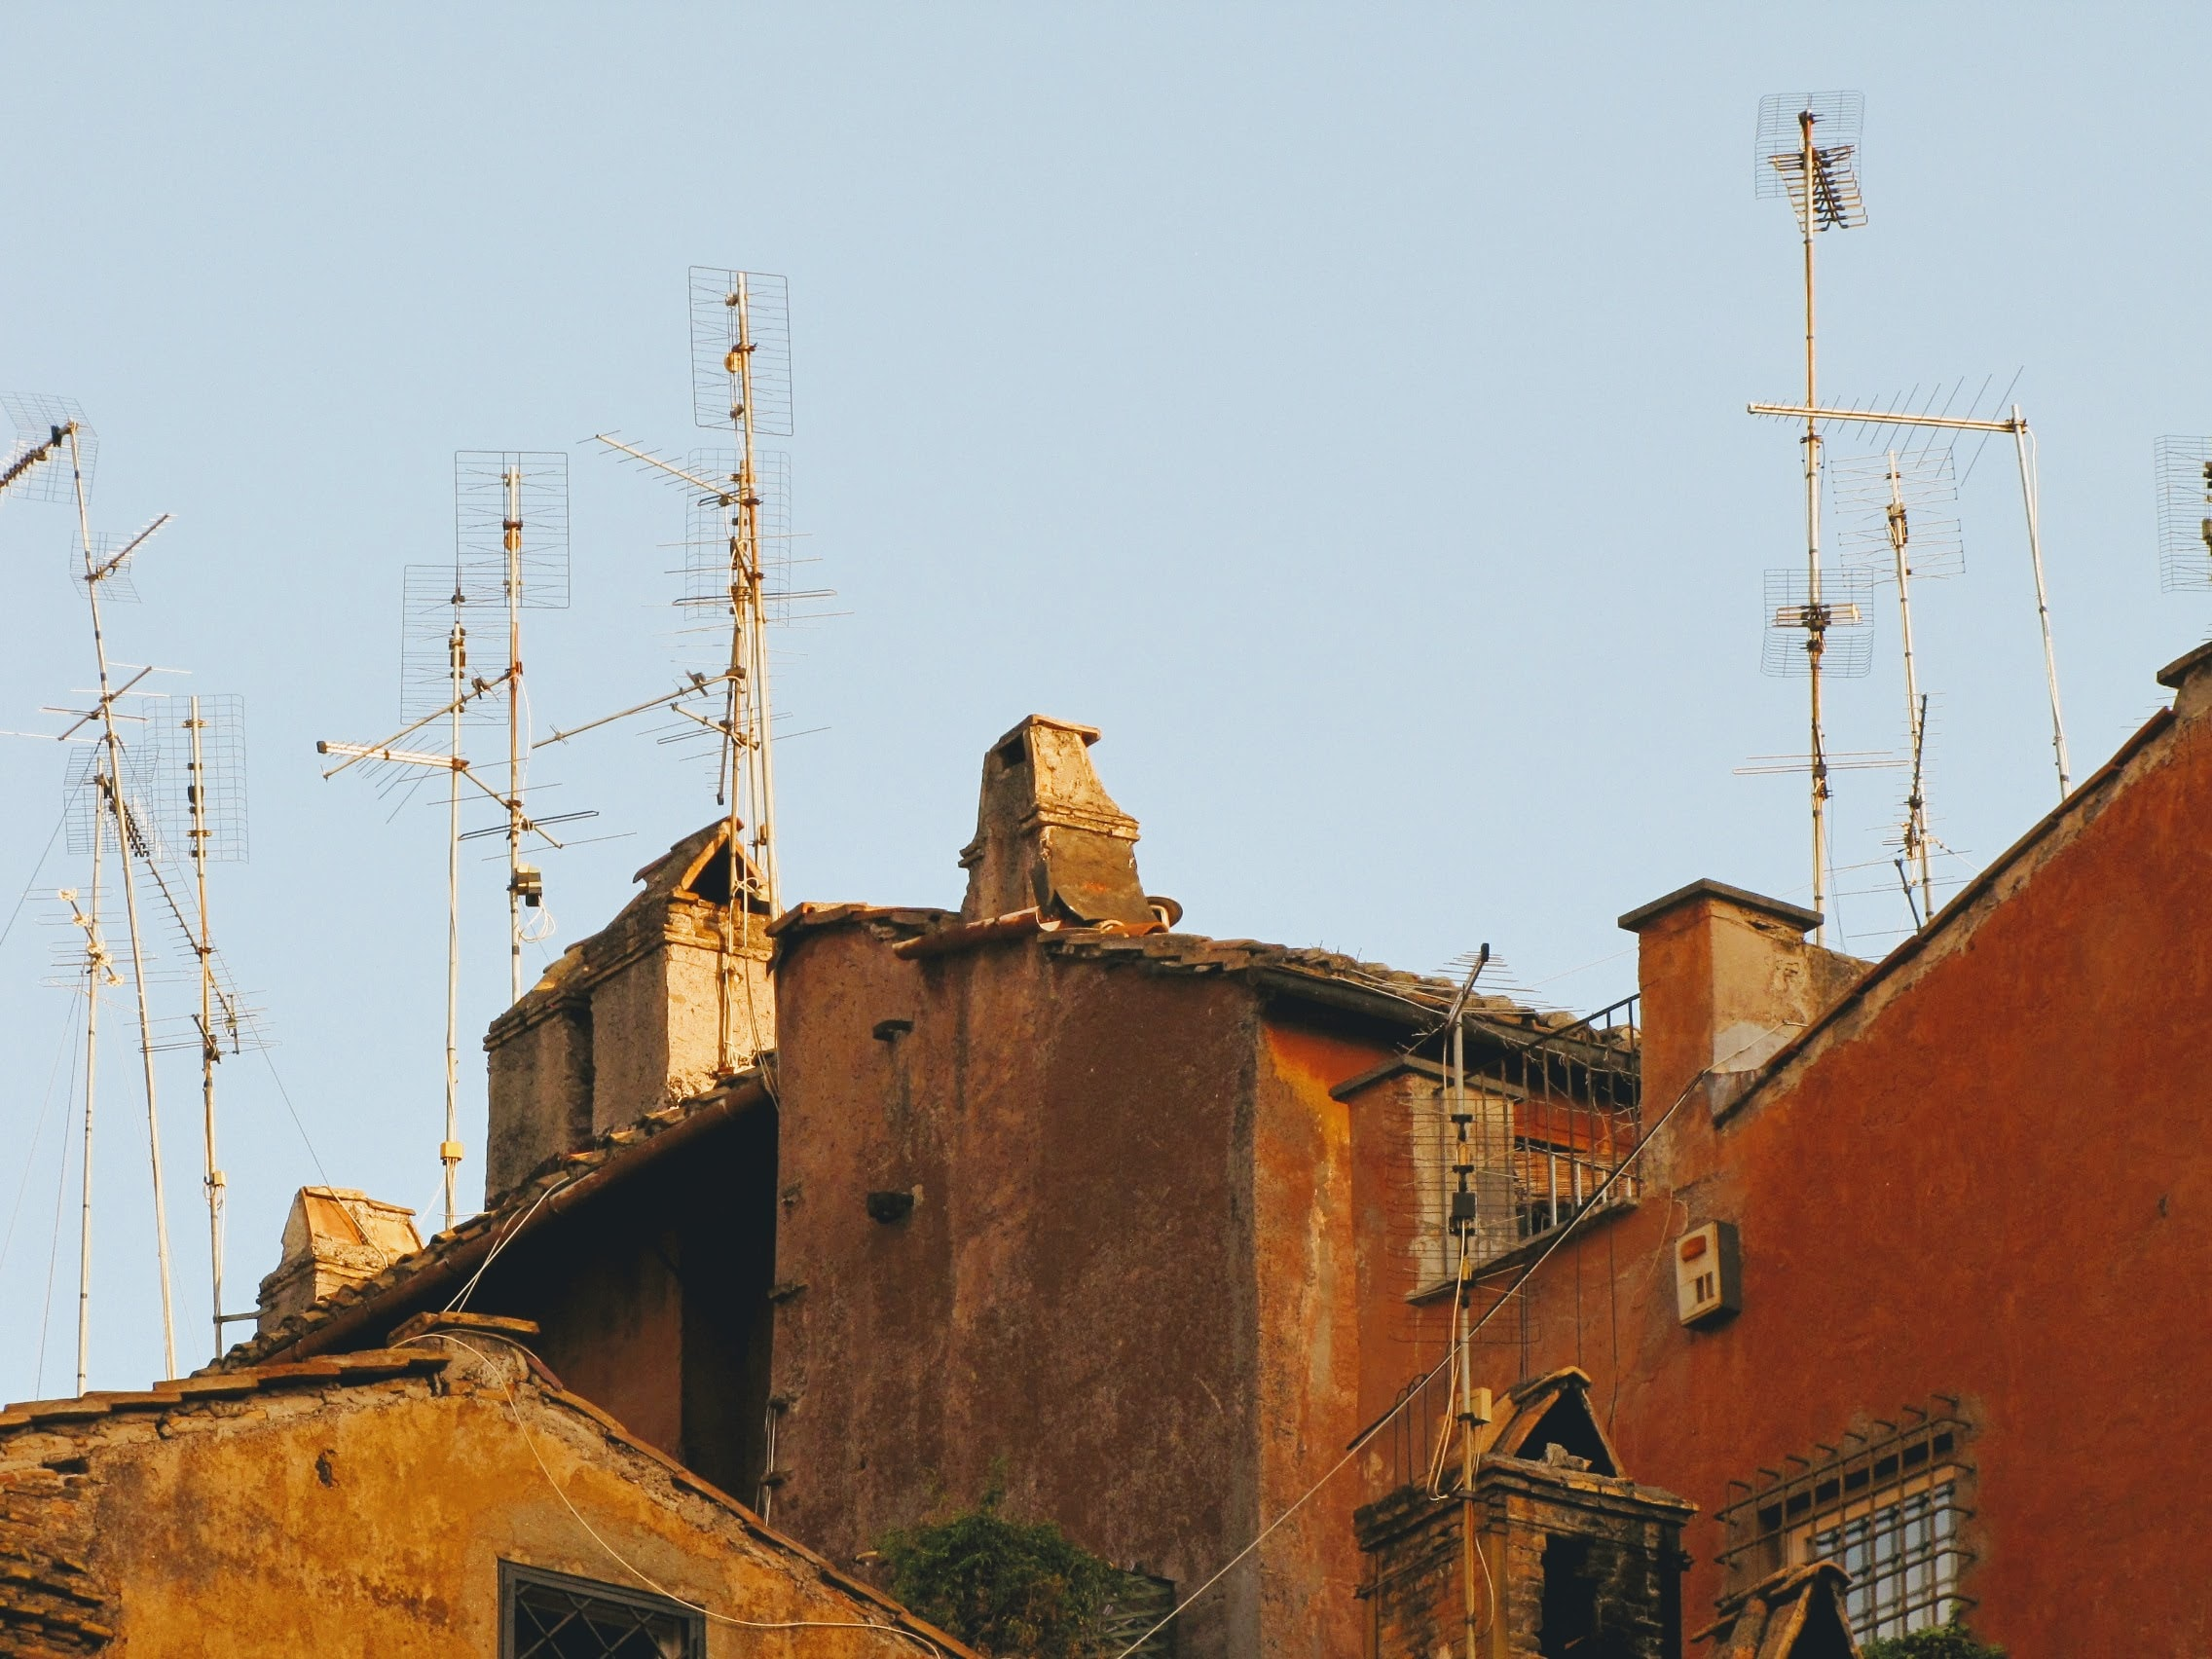 houses with antennas on the roofs